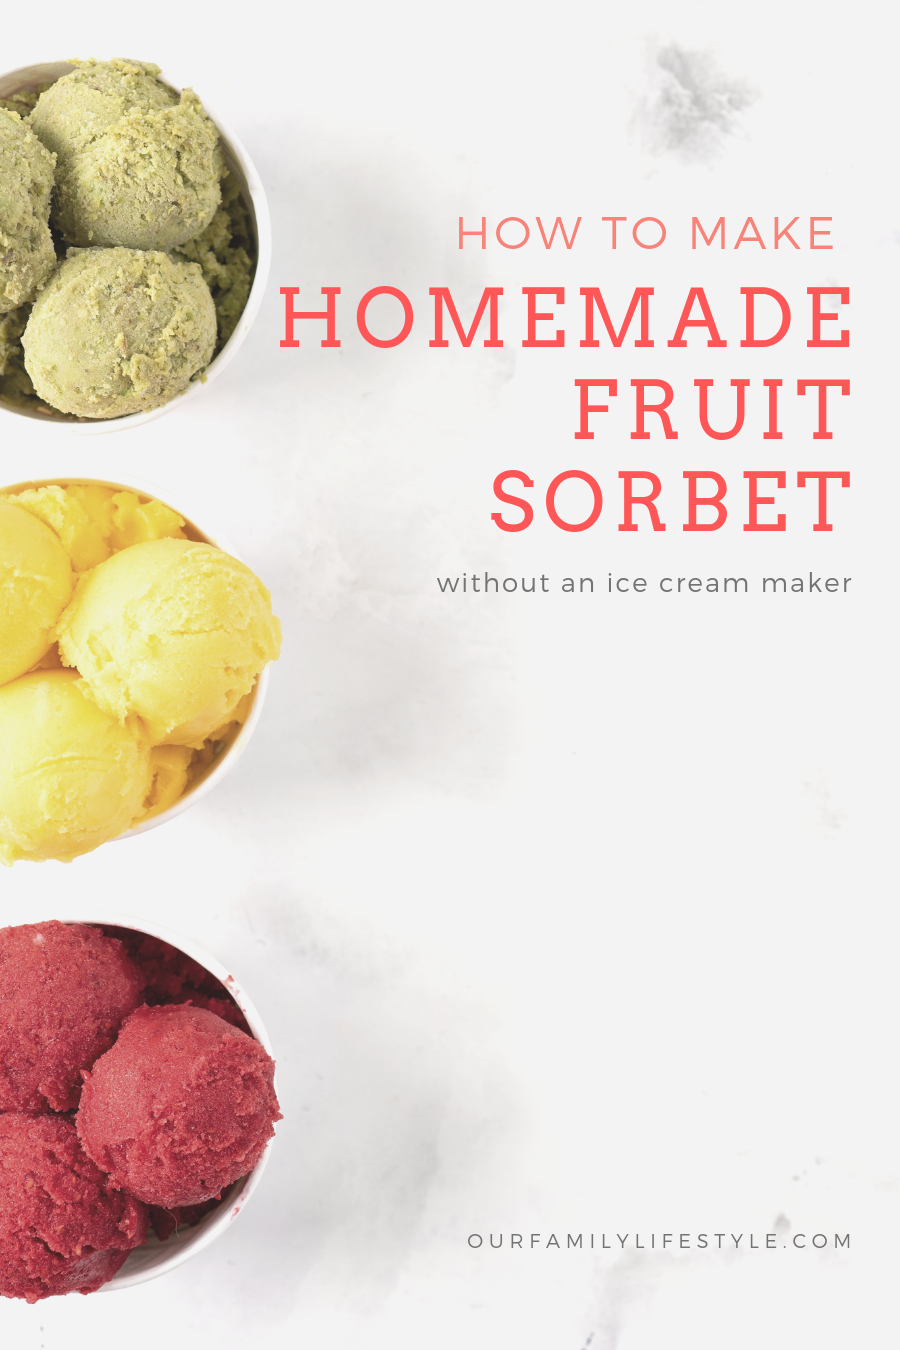 How to Make Homemade Fruit Sorbet Without an Ice Cream Maker